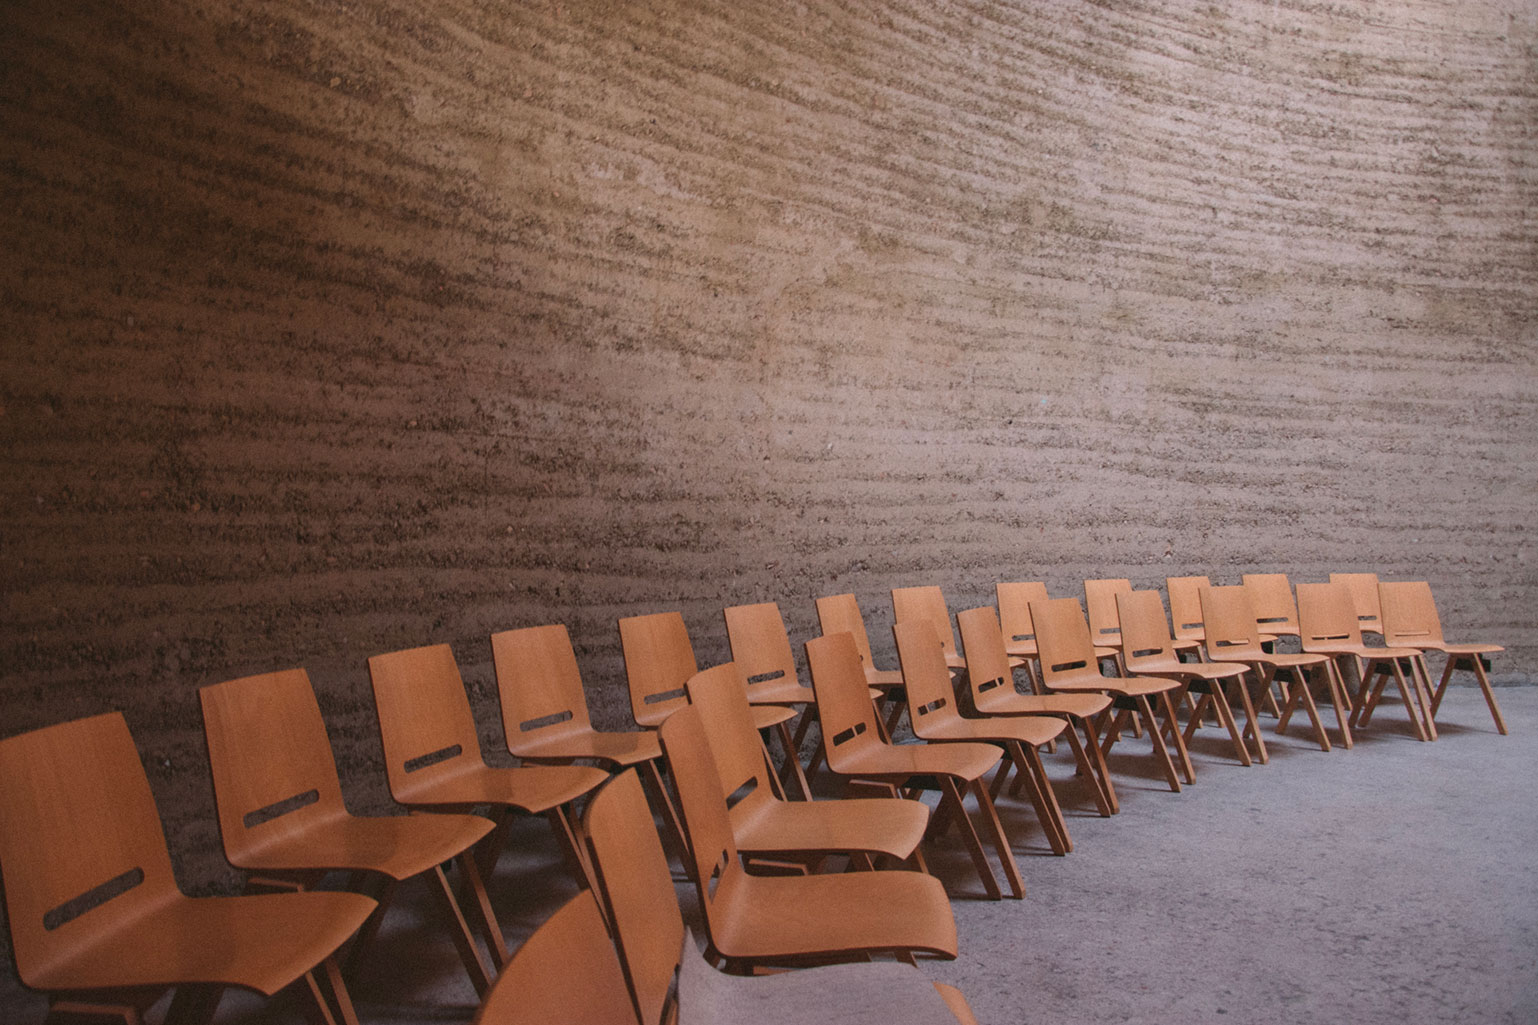 two rows of empty wooden chairs